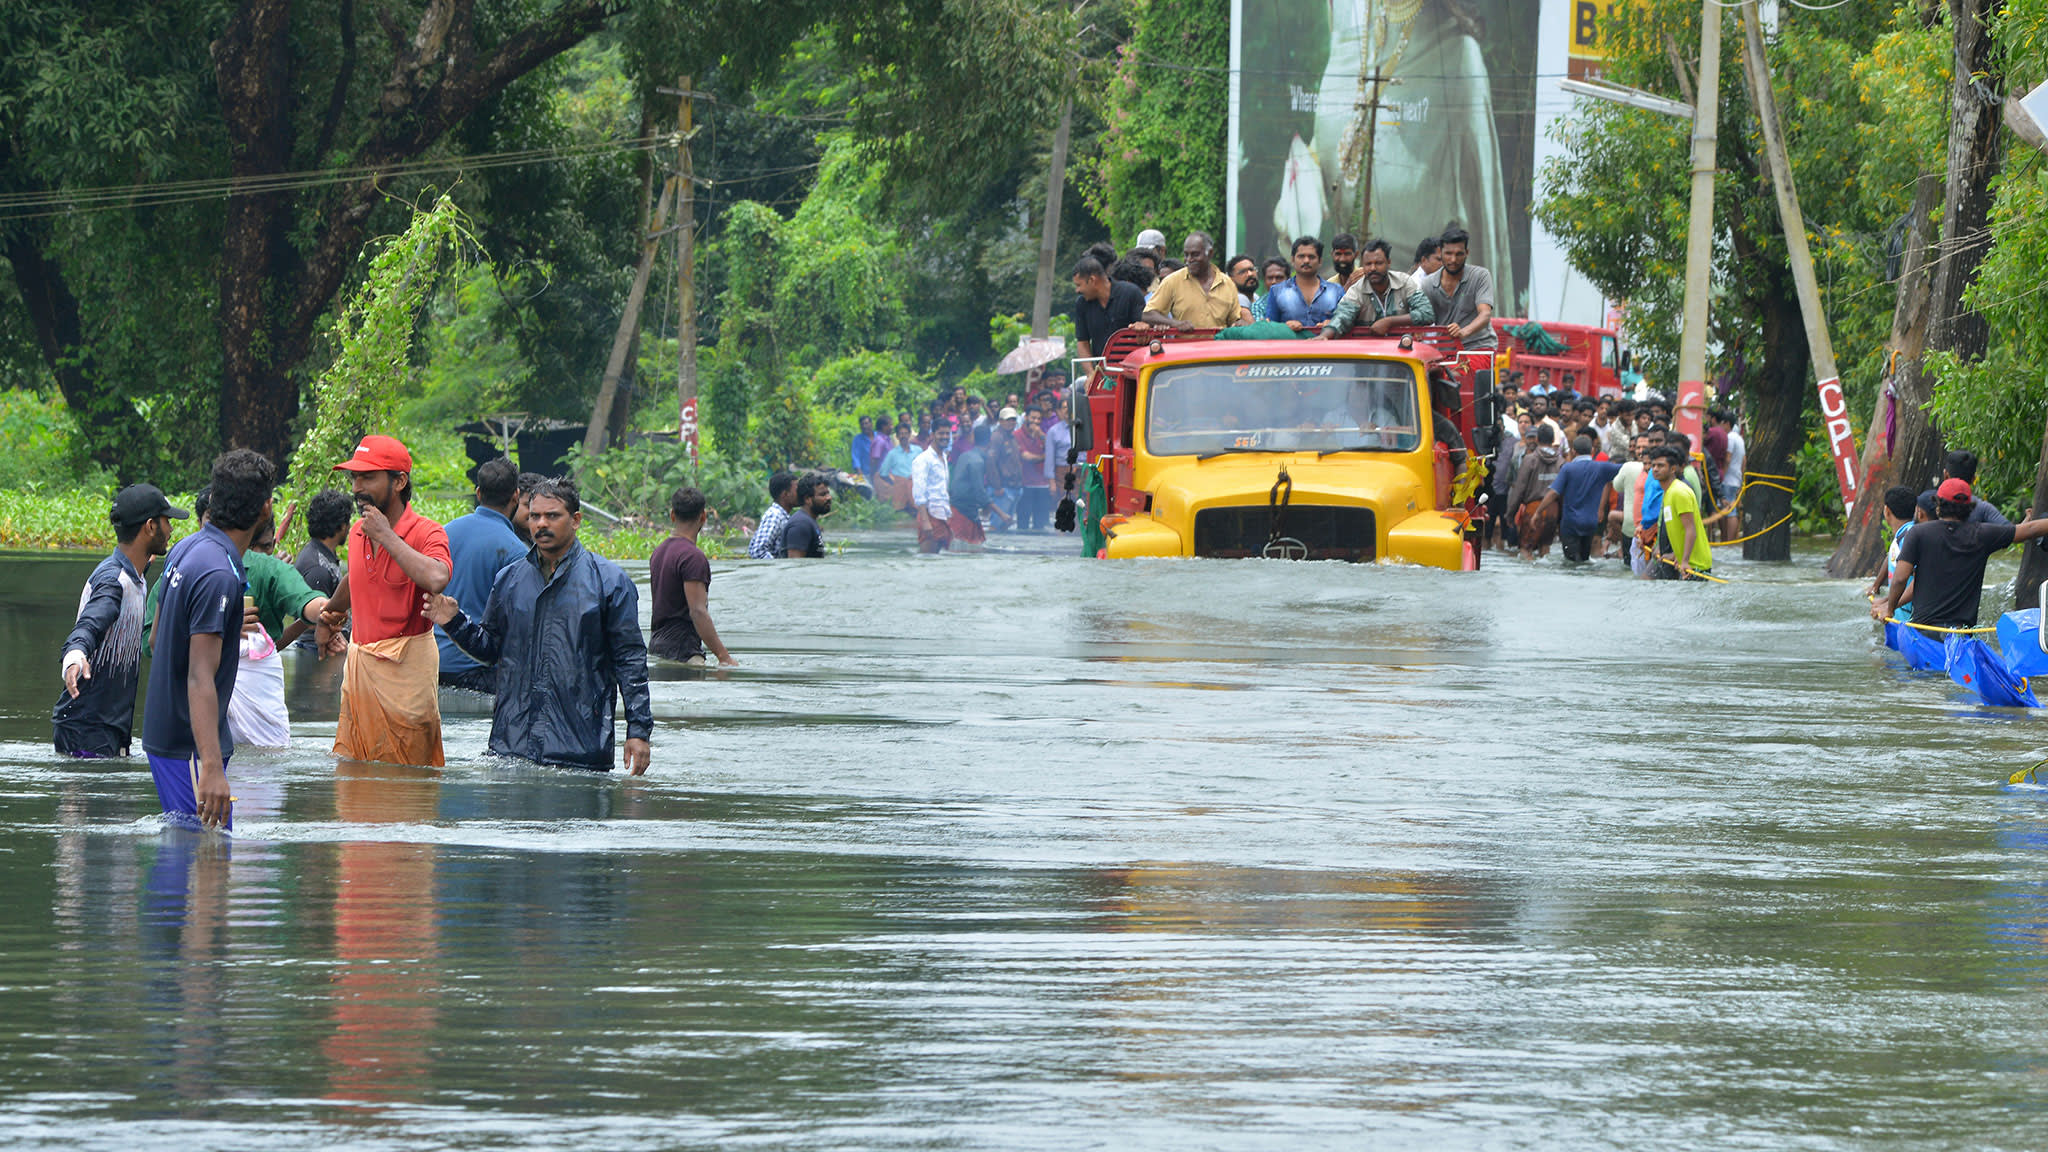 Damage wreaked by Kerala floods to cost $2.7bn